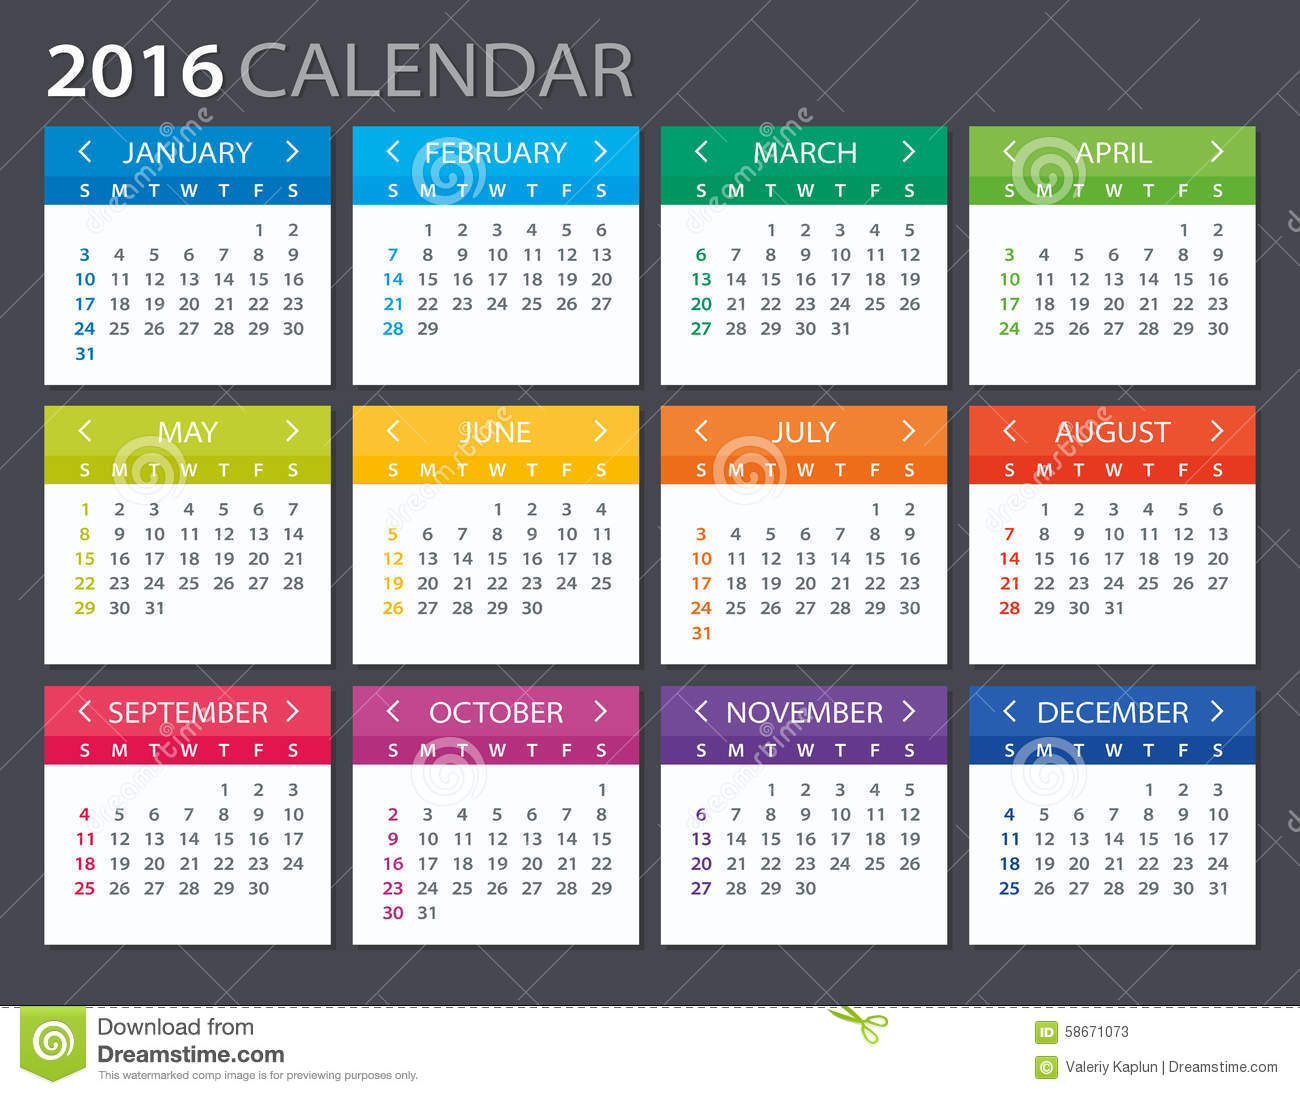 Calendar Illustrations : Calendar illustration stock vector image